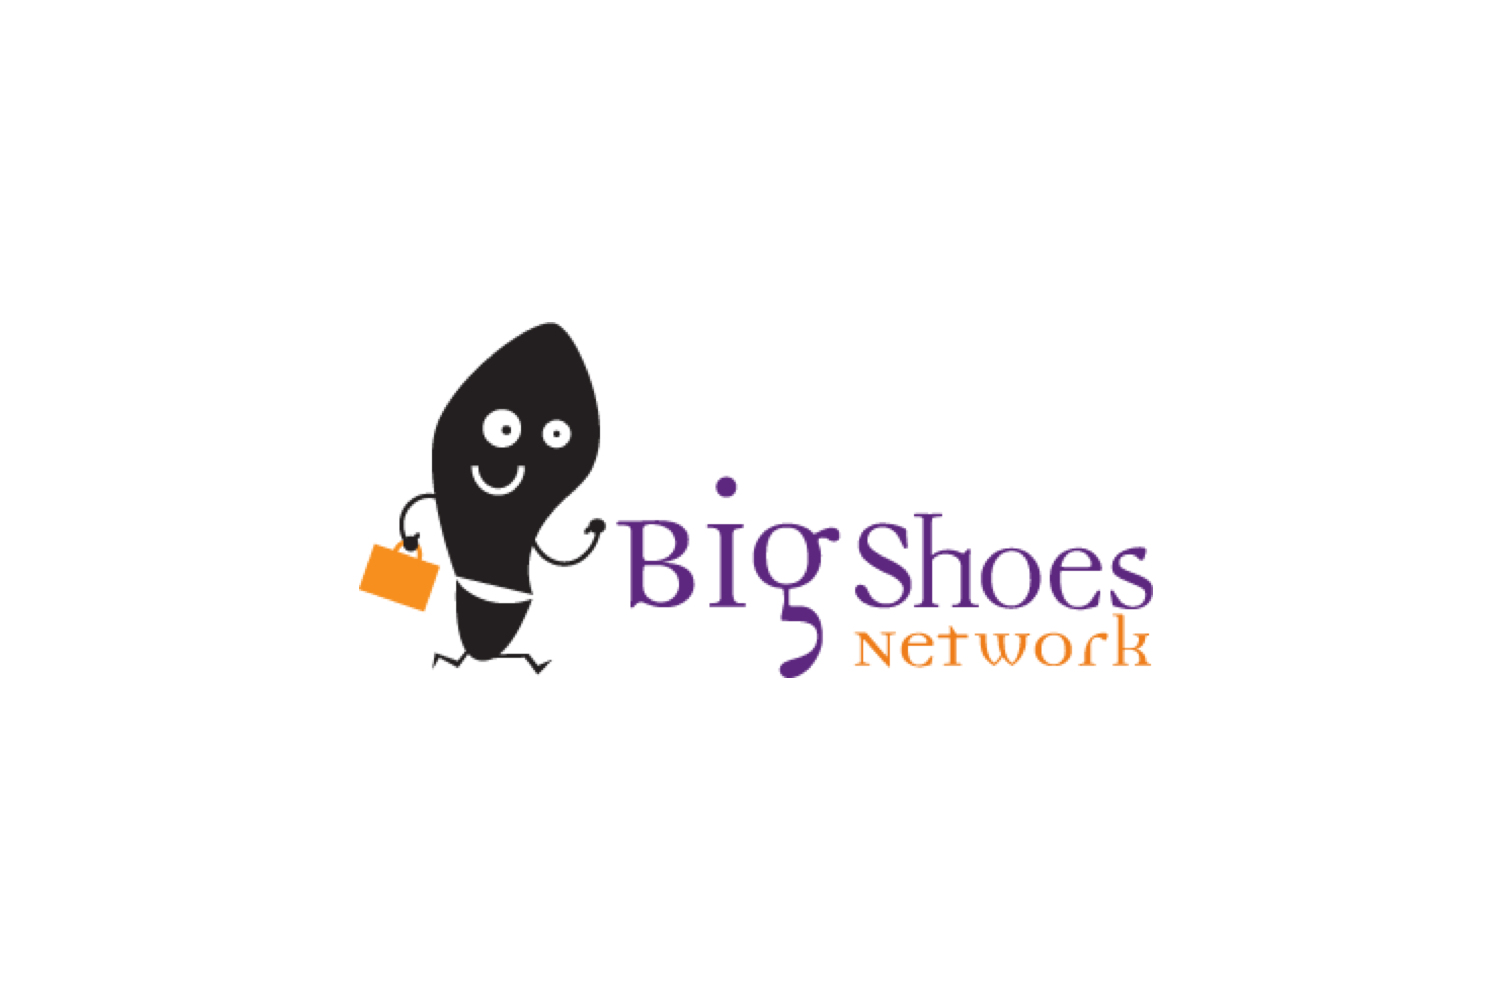 big-shoes-network-logo.png